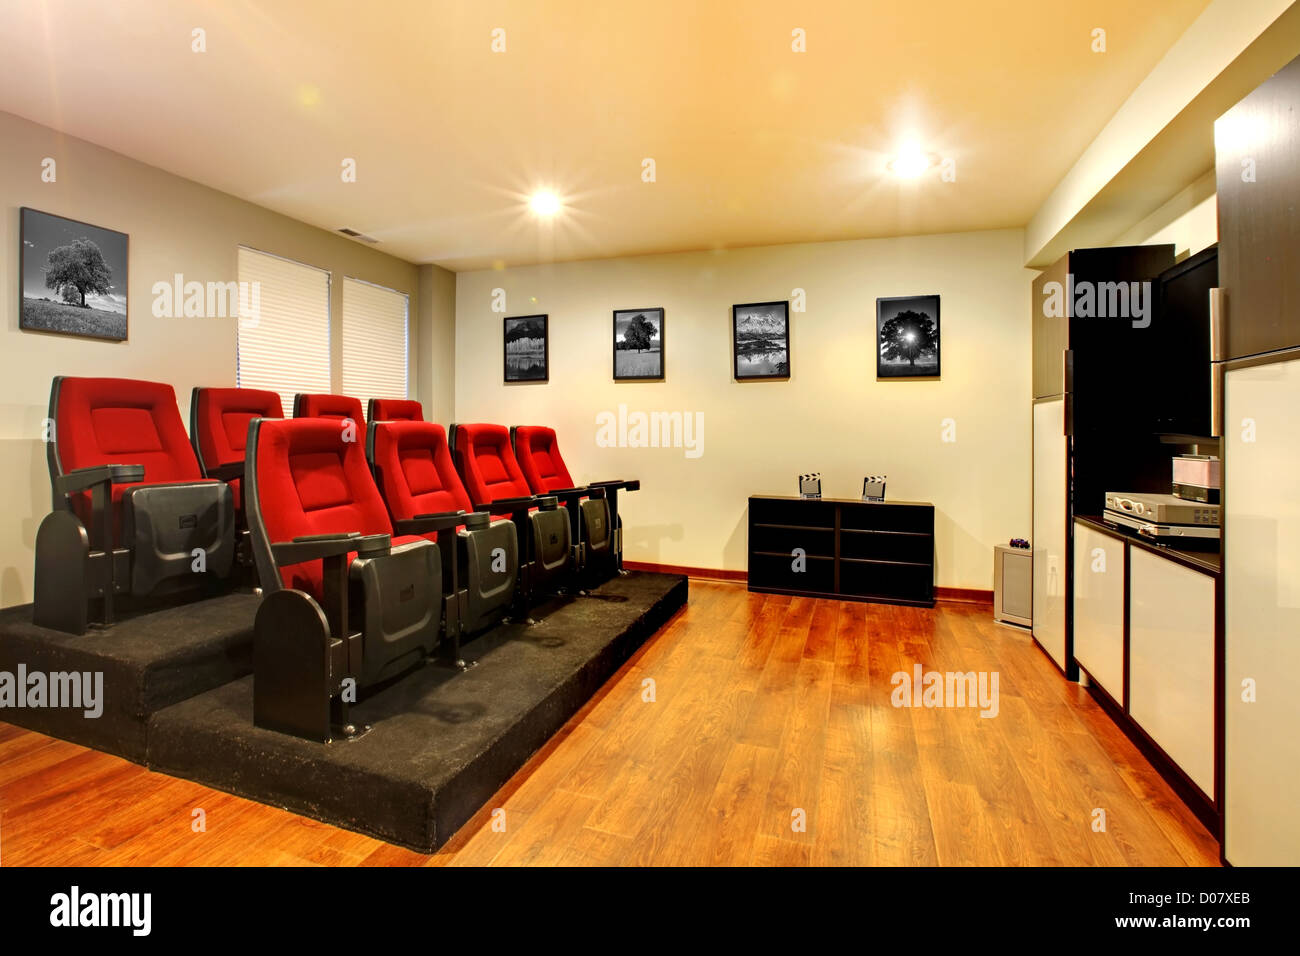 Home Tv Movie Theater Entertainment Room Interior With Real Cinema Stock Photo Alamy